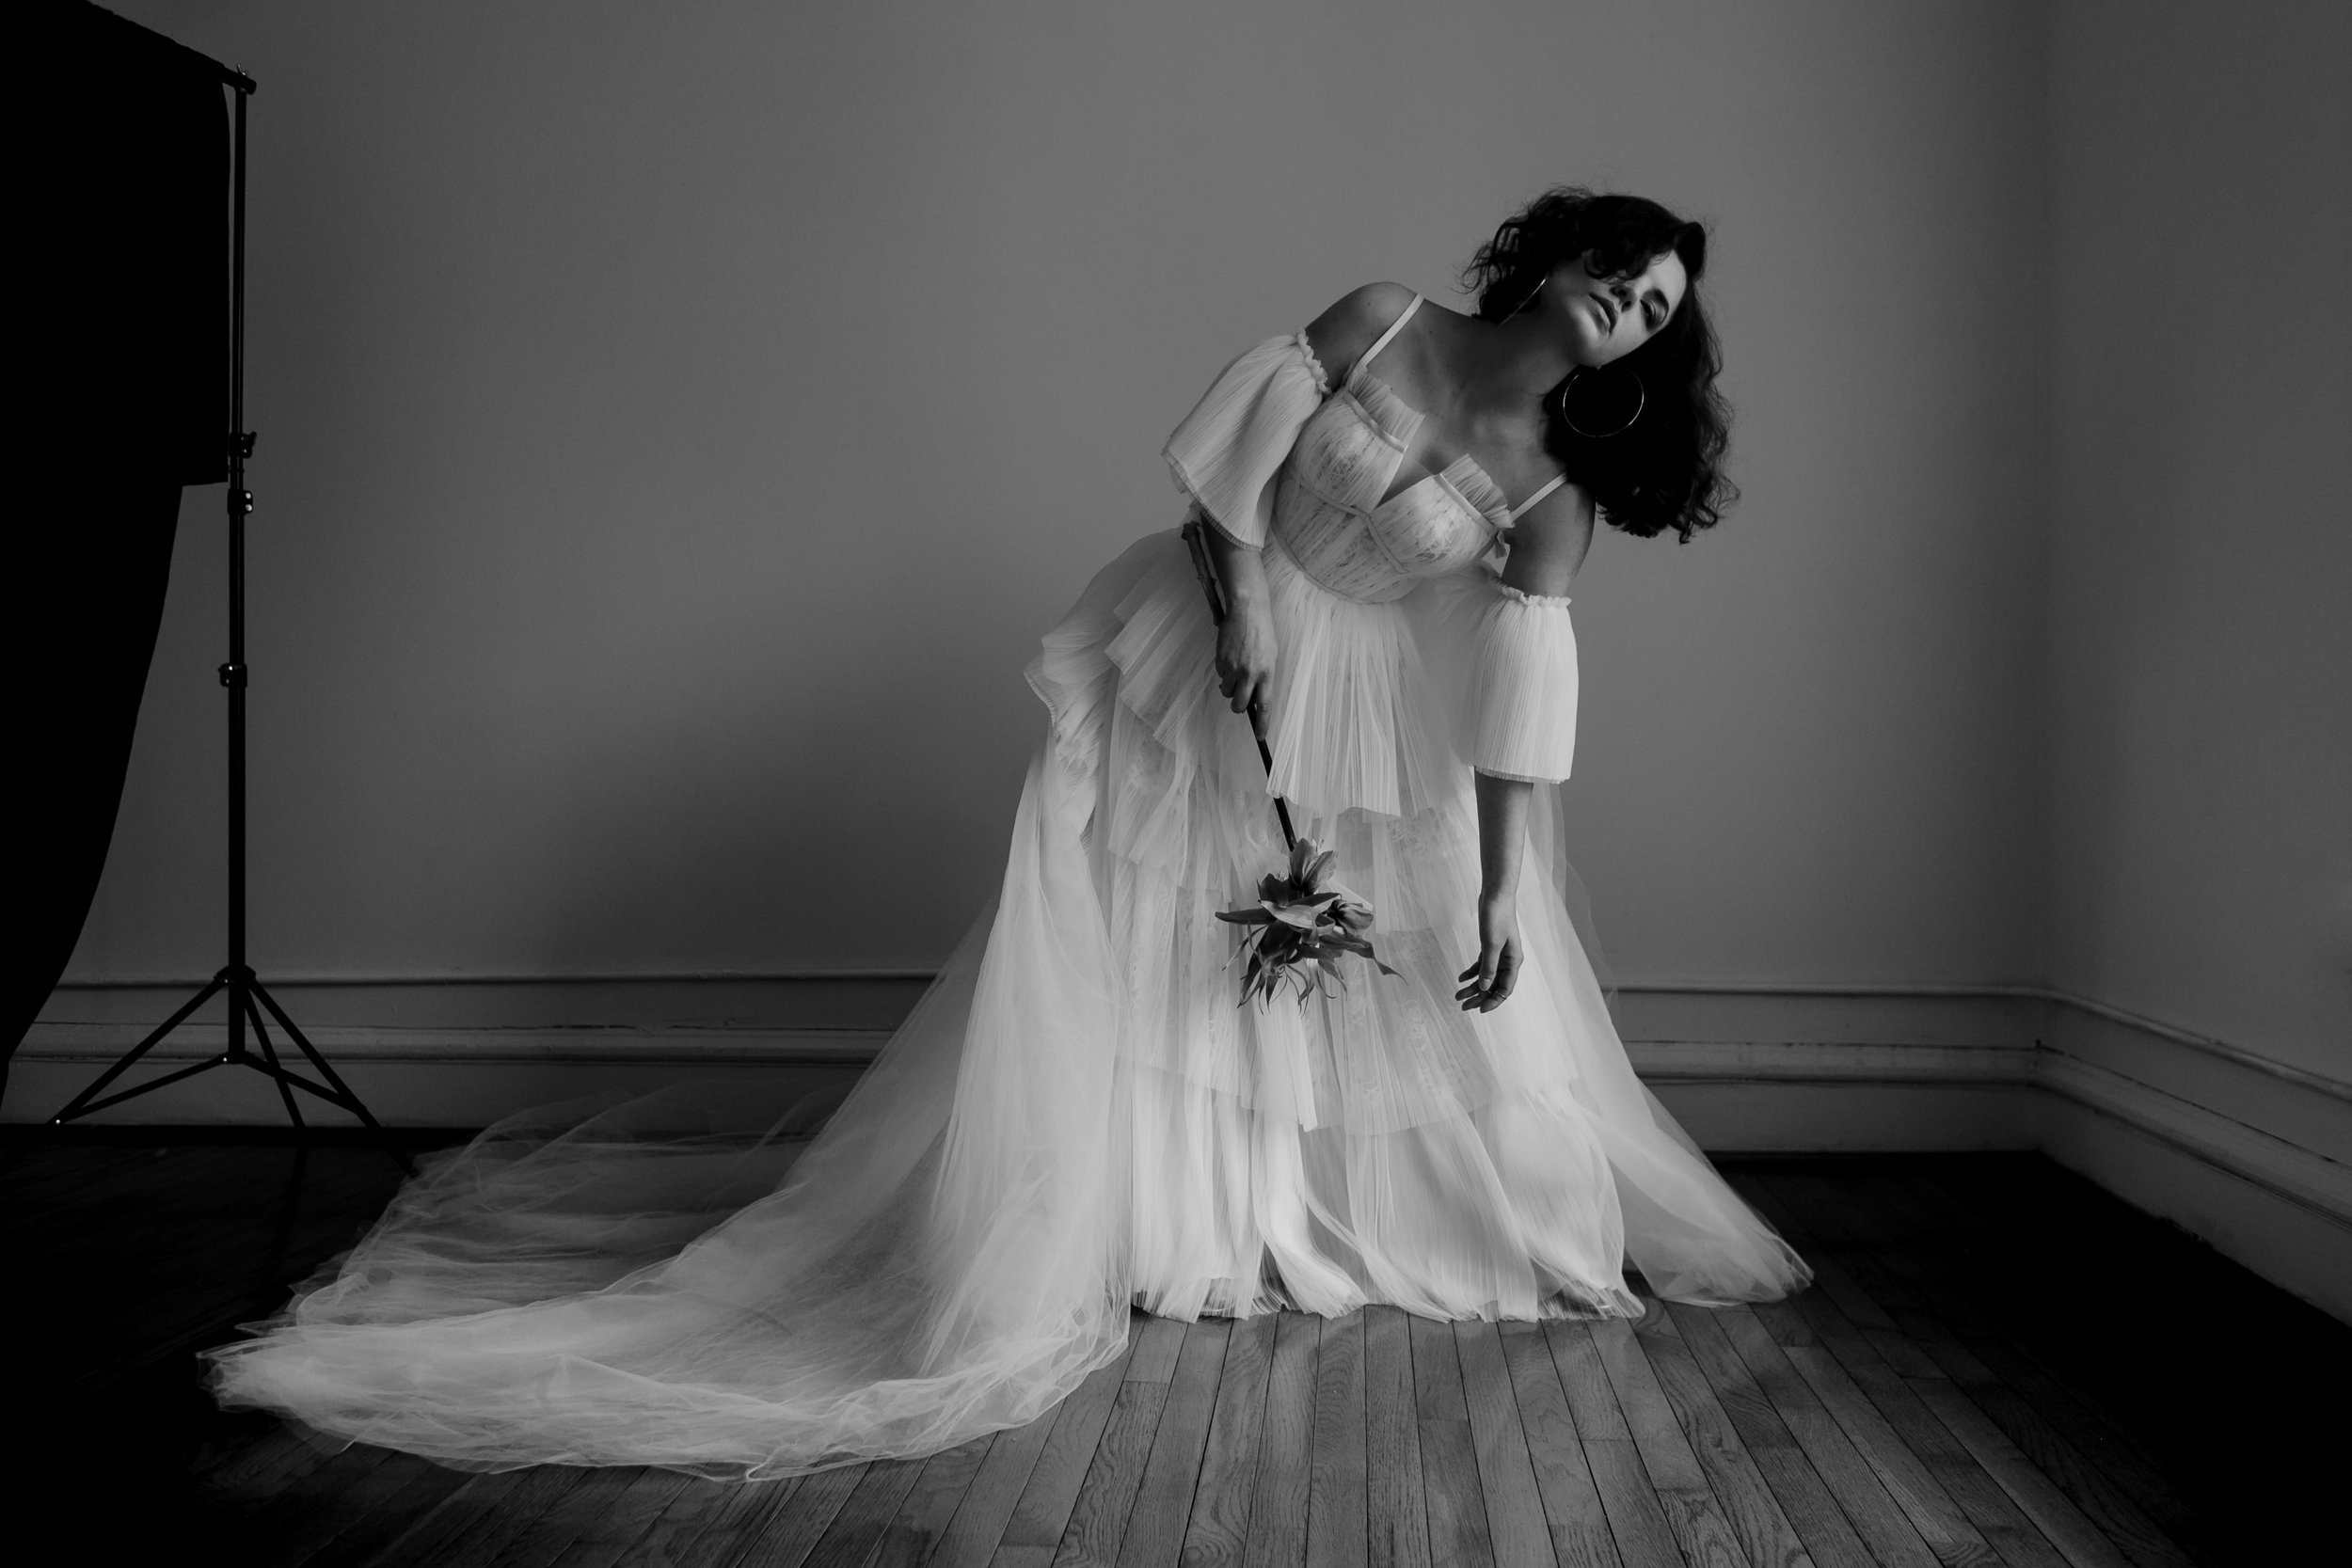 Chicago-Bride-Wedding-Dress-Varca-Edited-619.jpg